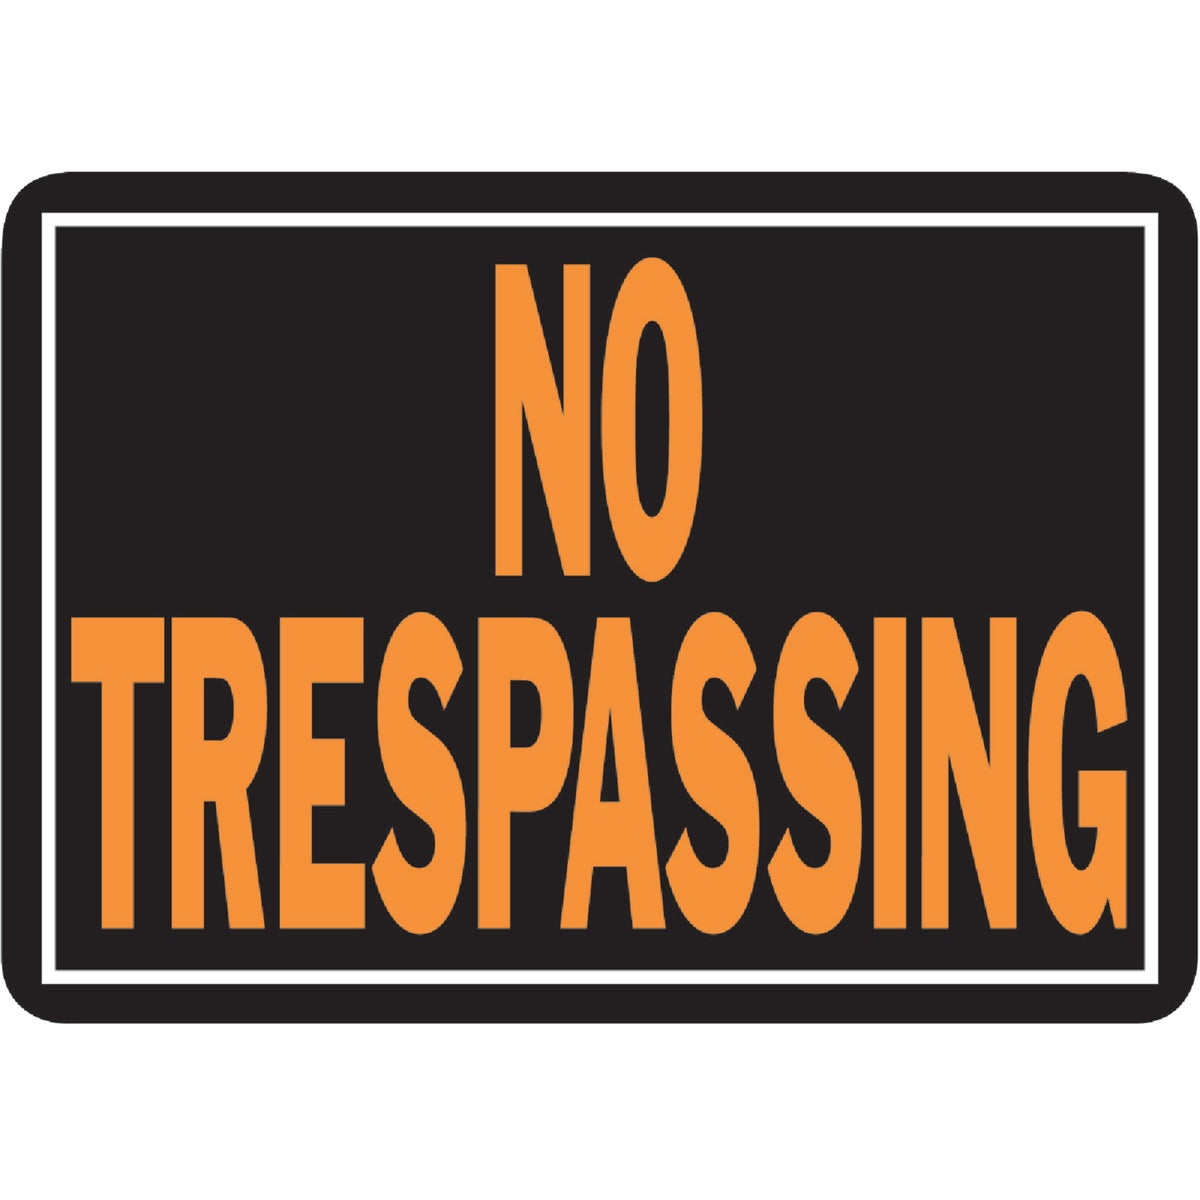 10X14 NO TRESPASS SIGN - 804 by Hy Ko Prods Co